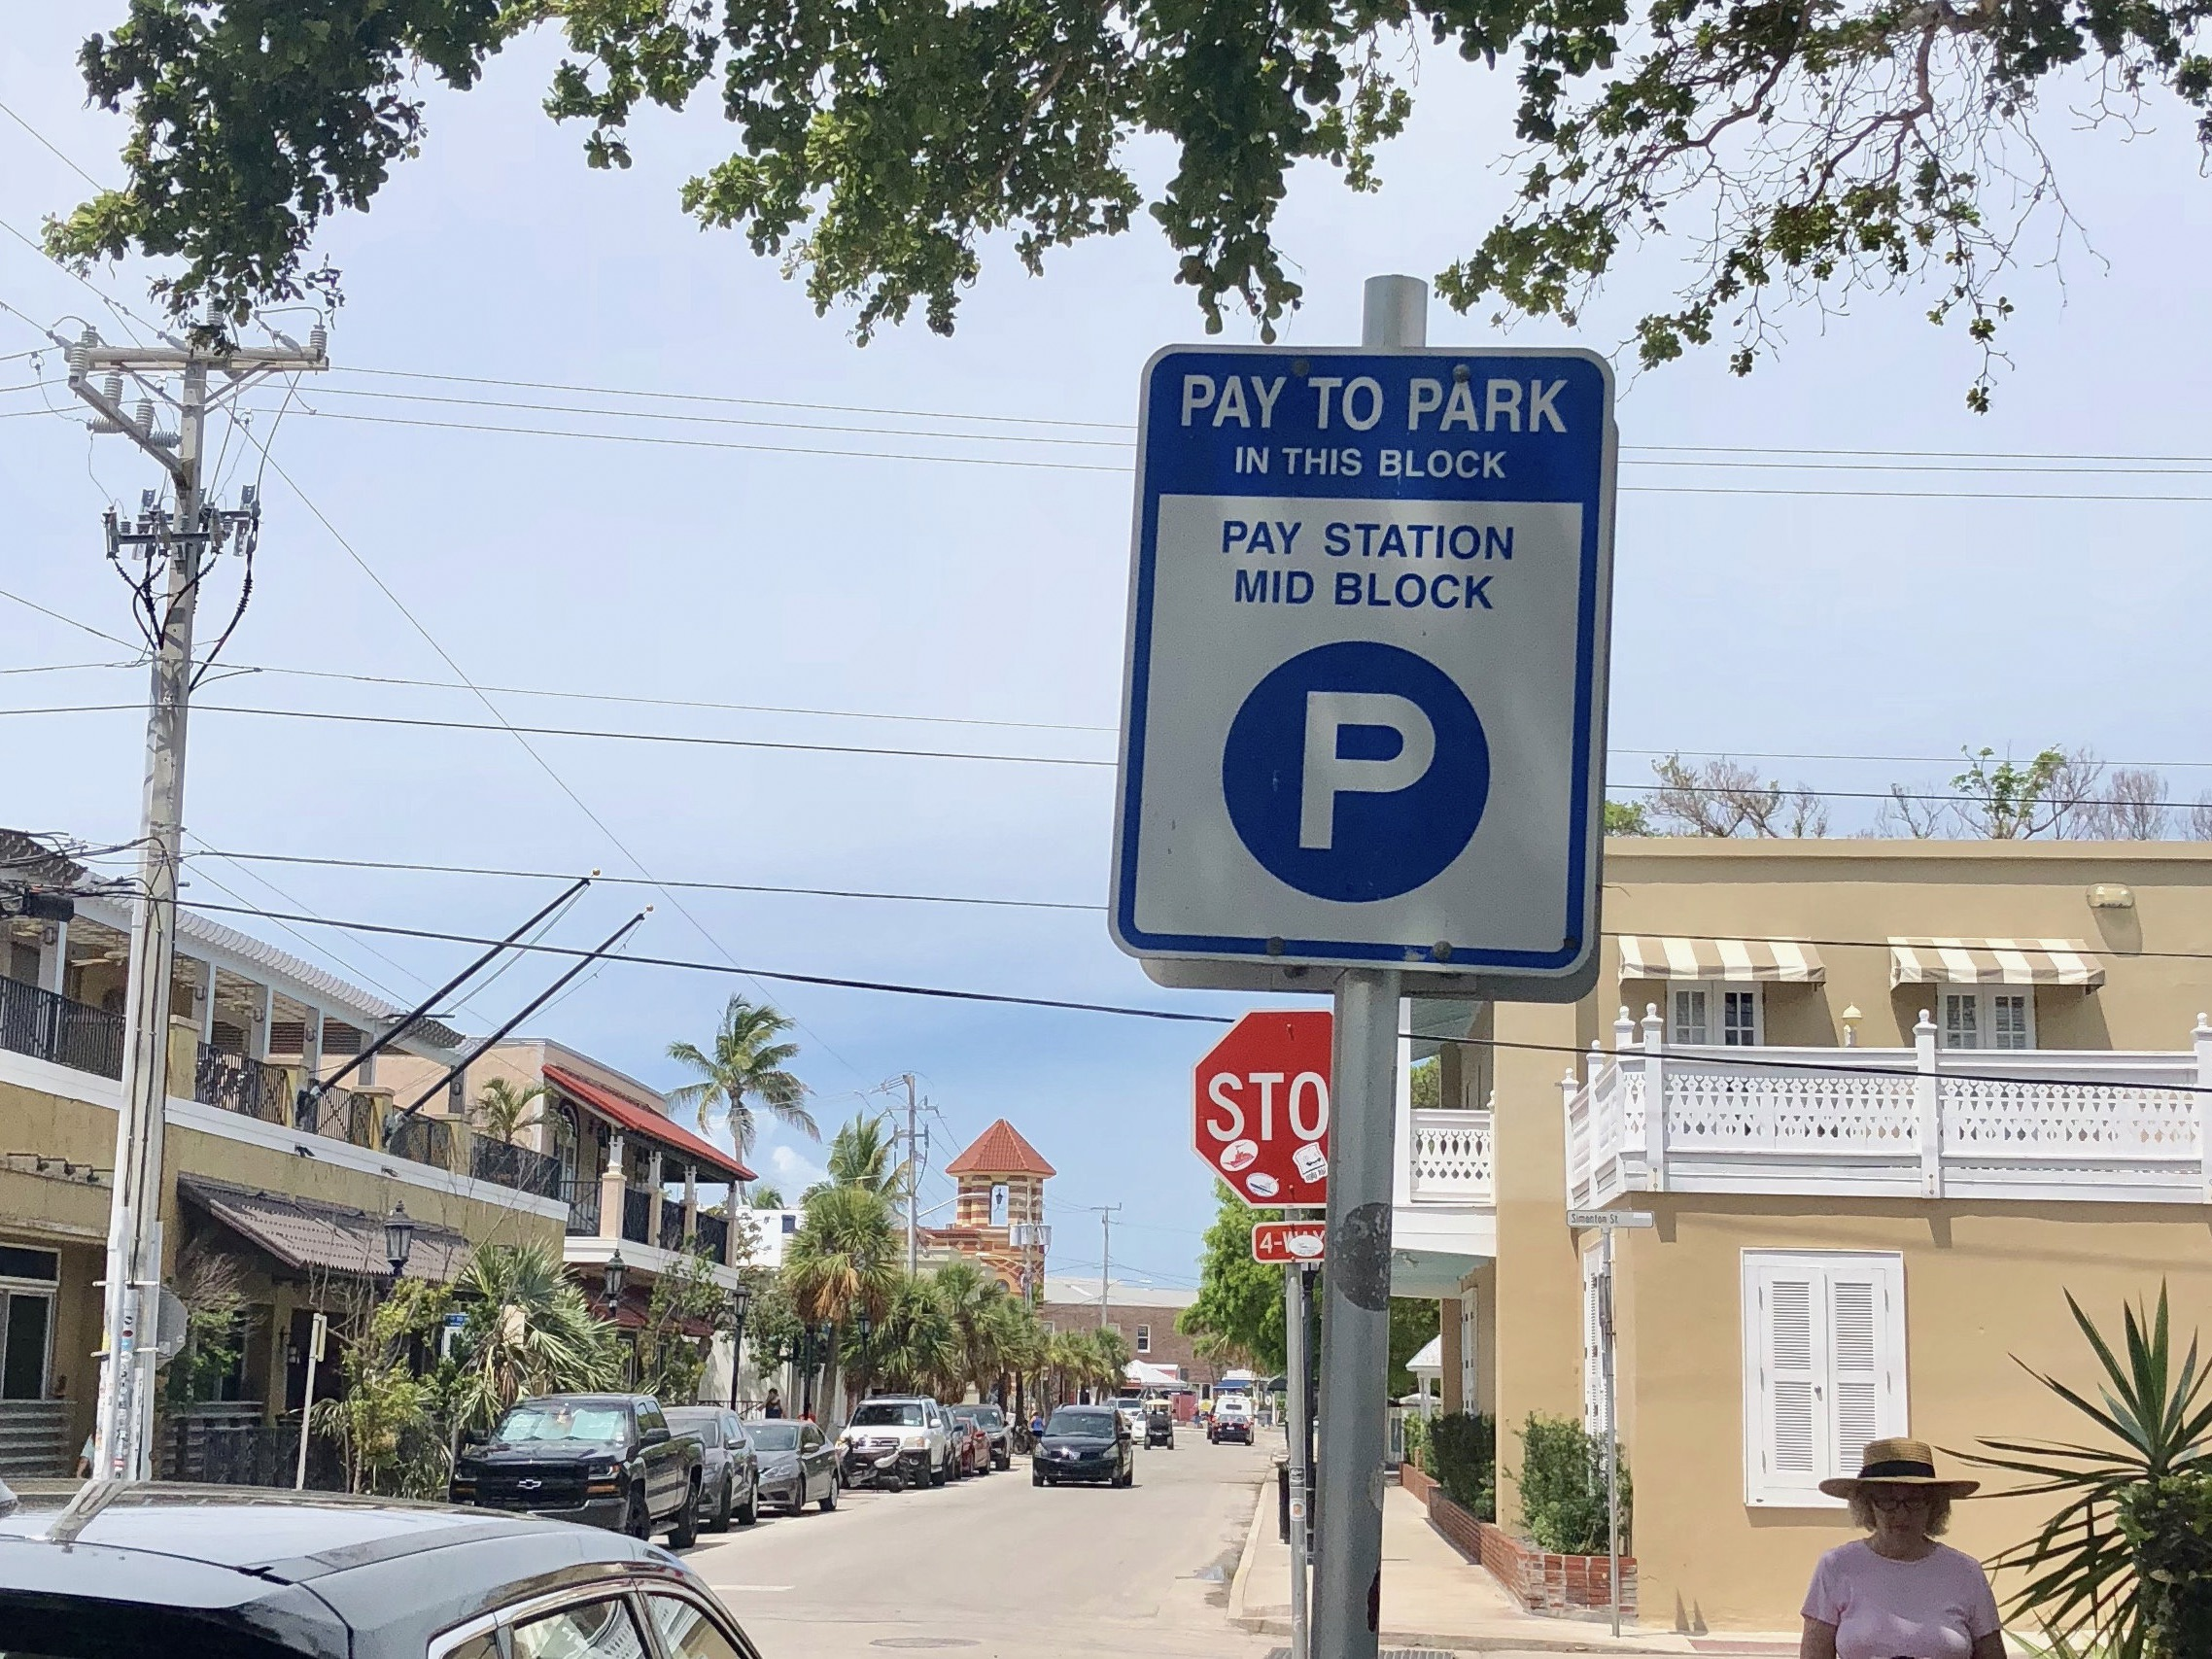 Pay to Park sign in Key West FL